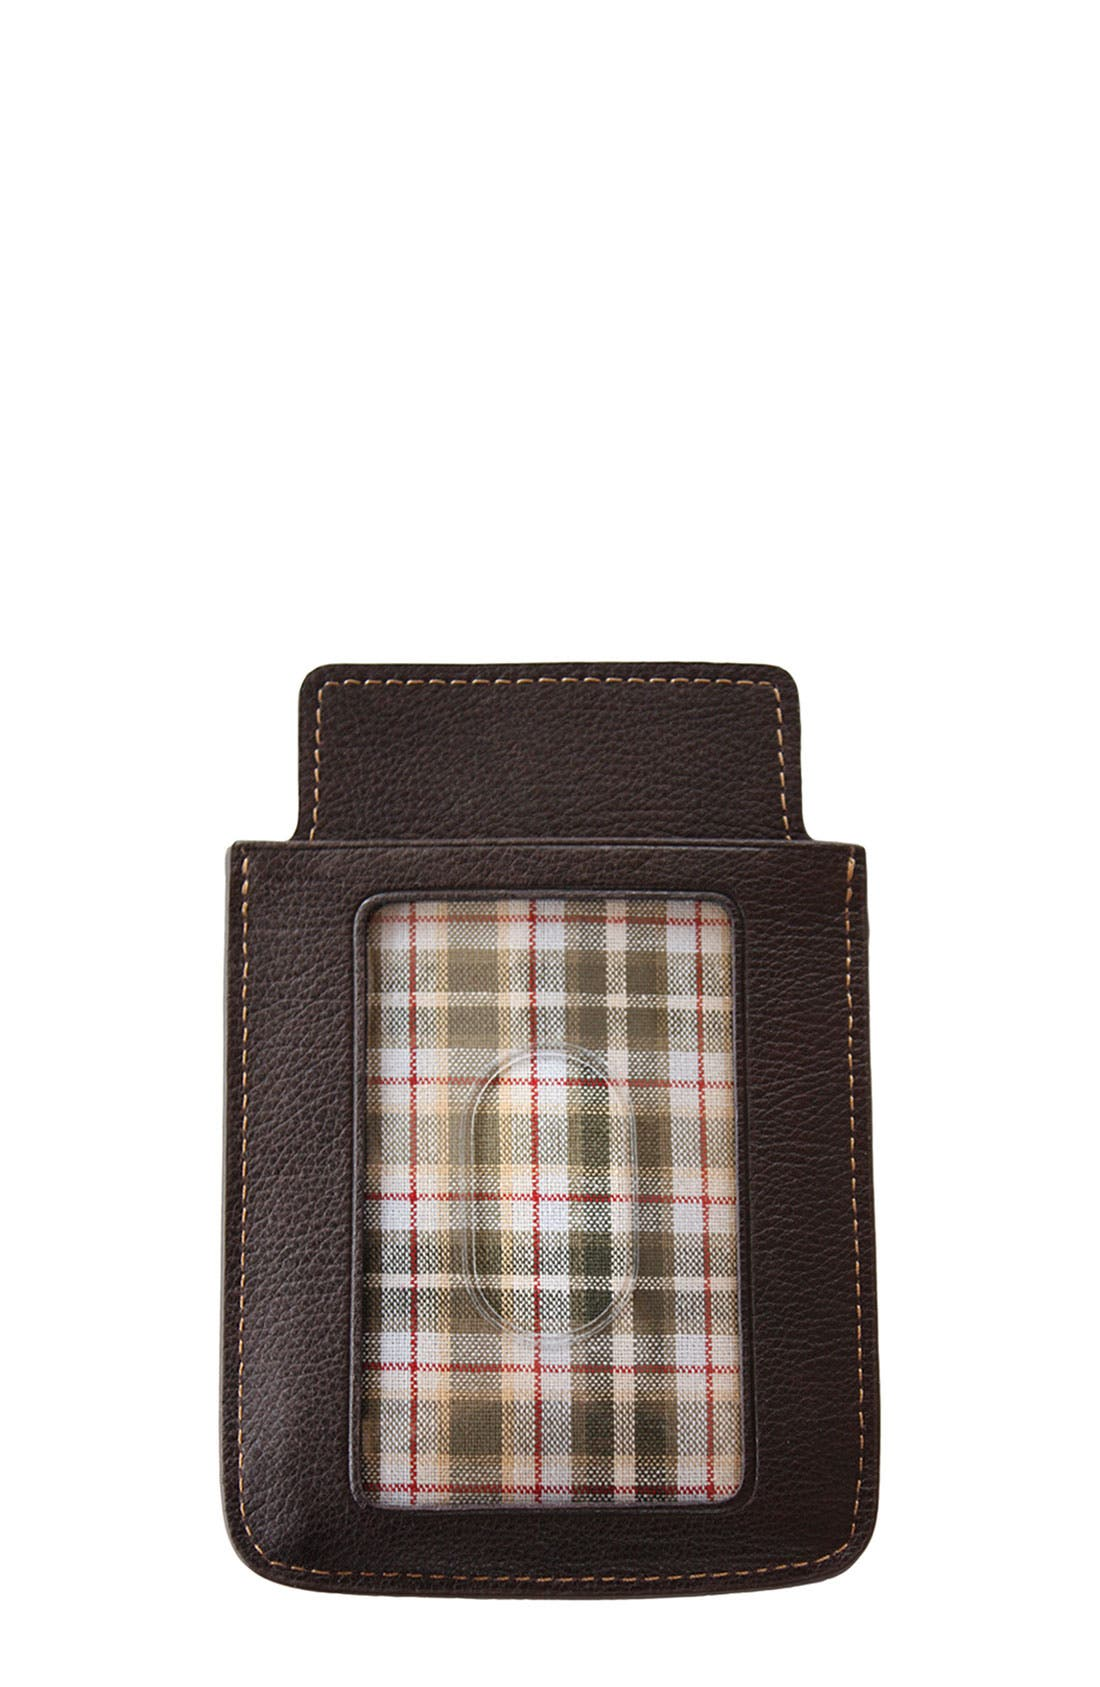 Alternate Image 1 Selected - Boconi 'iSheath' Smartphone Case